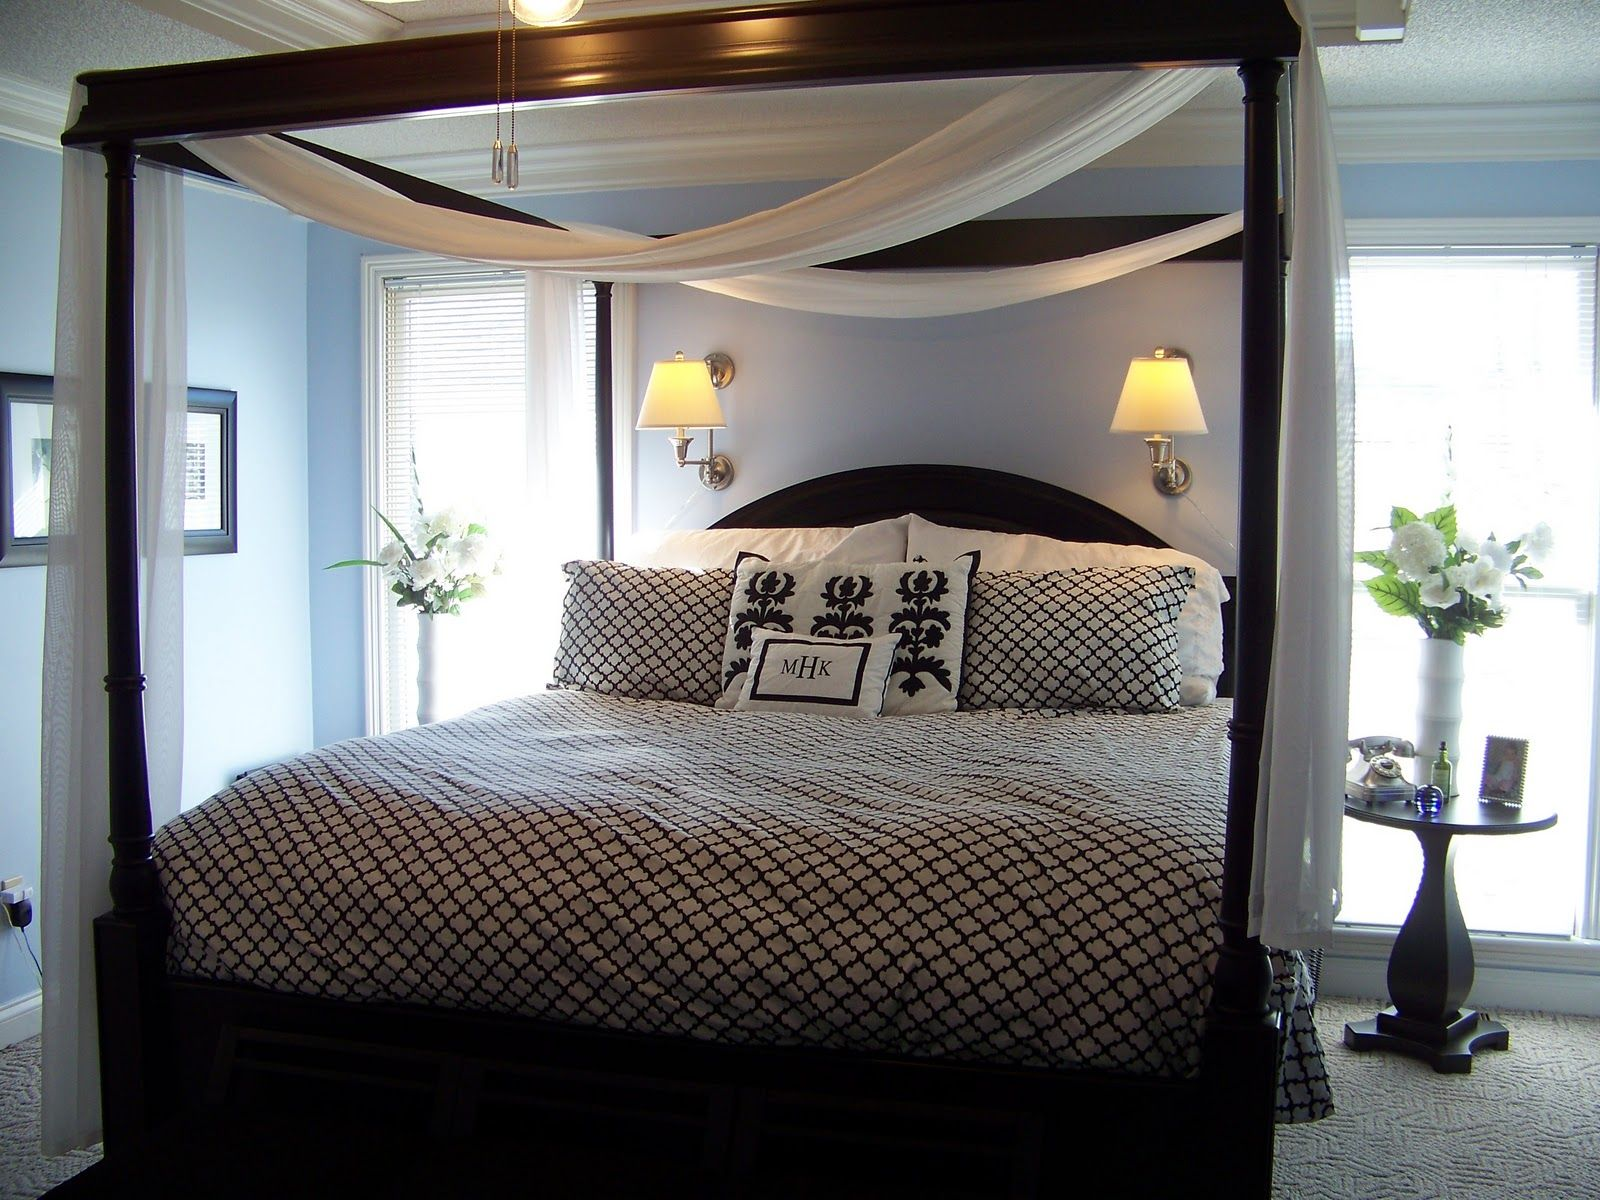 Bedroom Mansion Master Bedrooms mansion master bedrooms